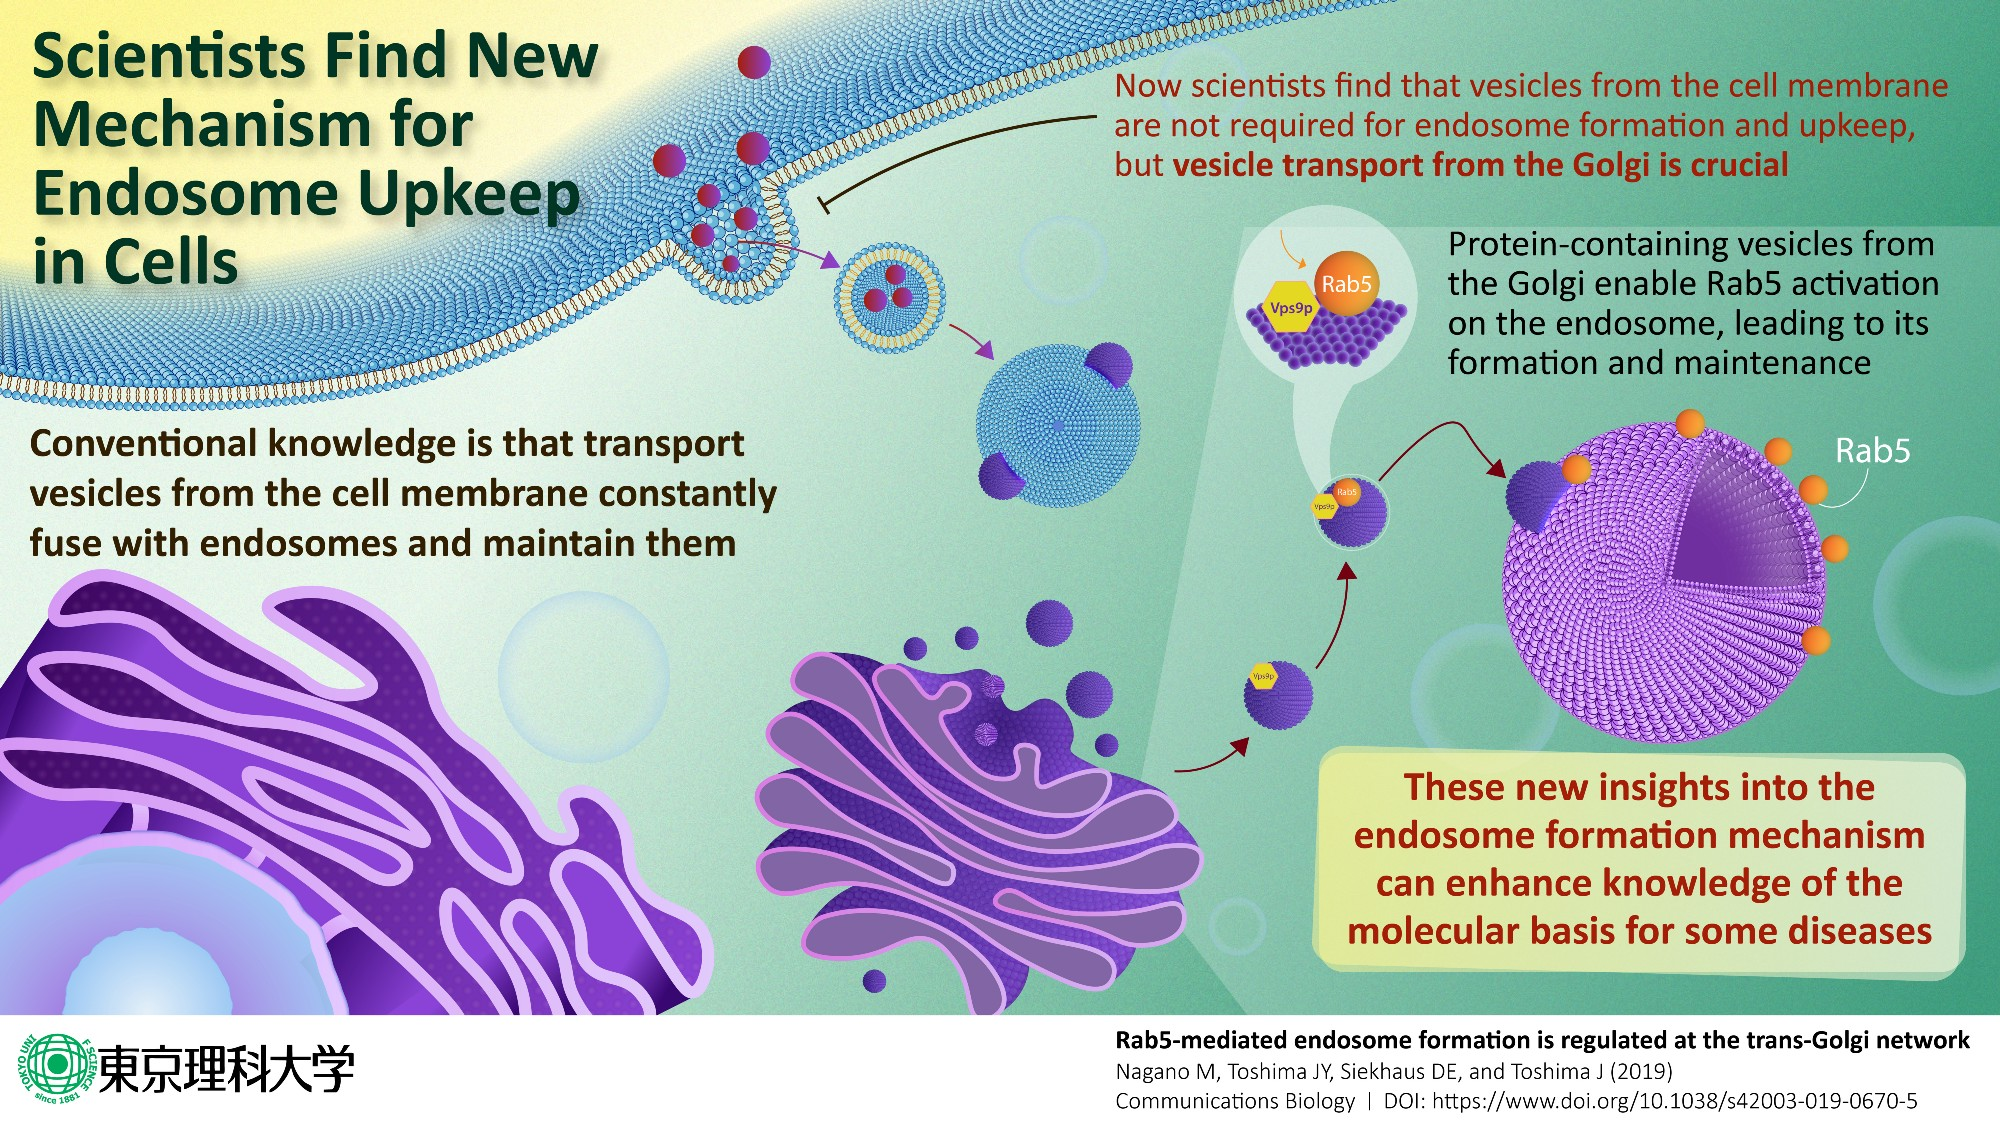 Formation & maintenance of the Endosome are governed by a newly discovered cellular mechanism